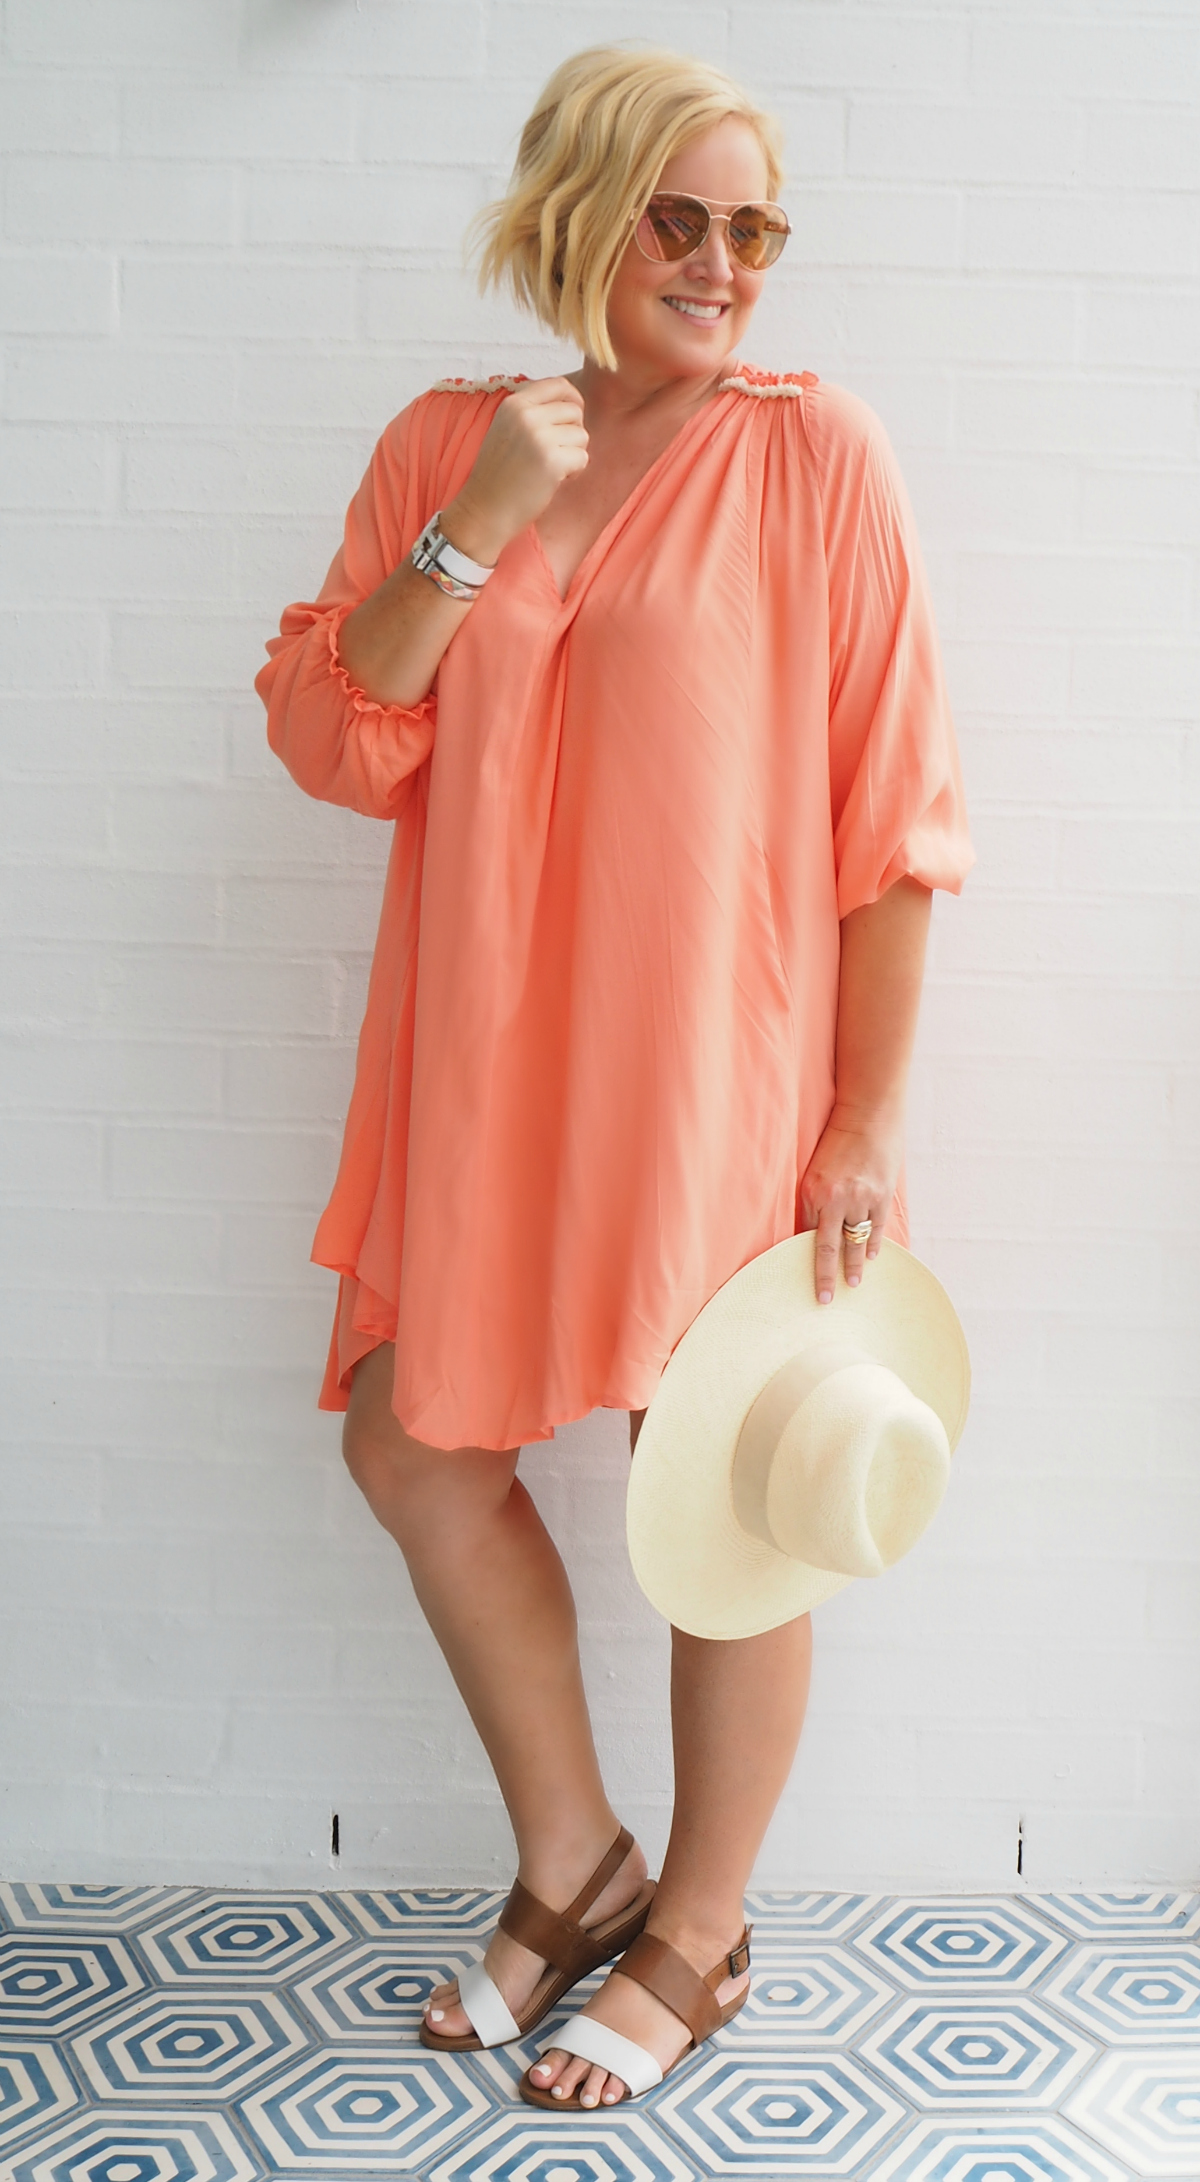 Eb & Ive Marni dress | Carolyn Unwin hat | FRANKiE4 Footwear LiBBi sandals | Michael Kors sunglasses